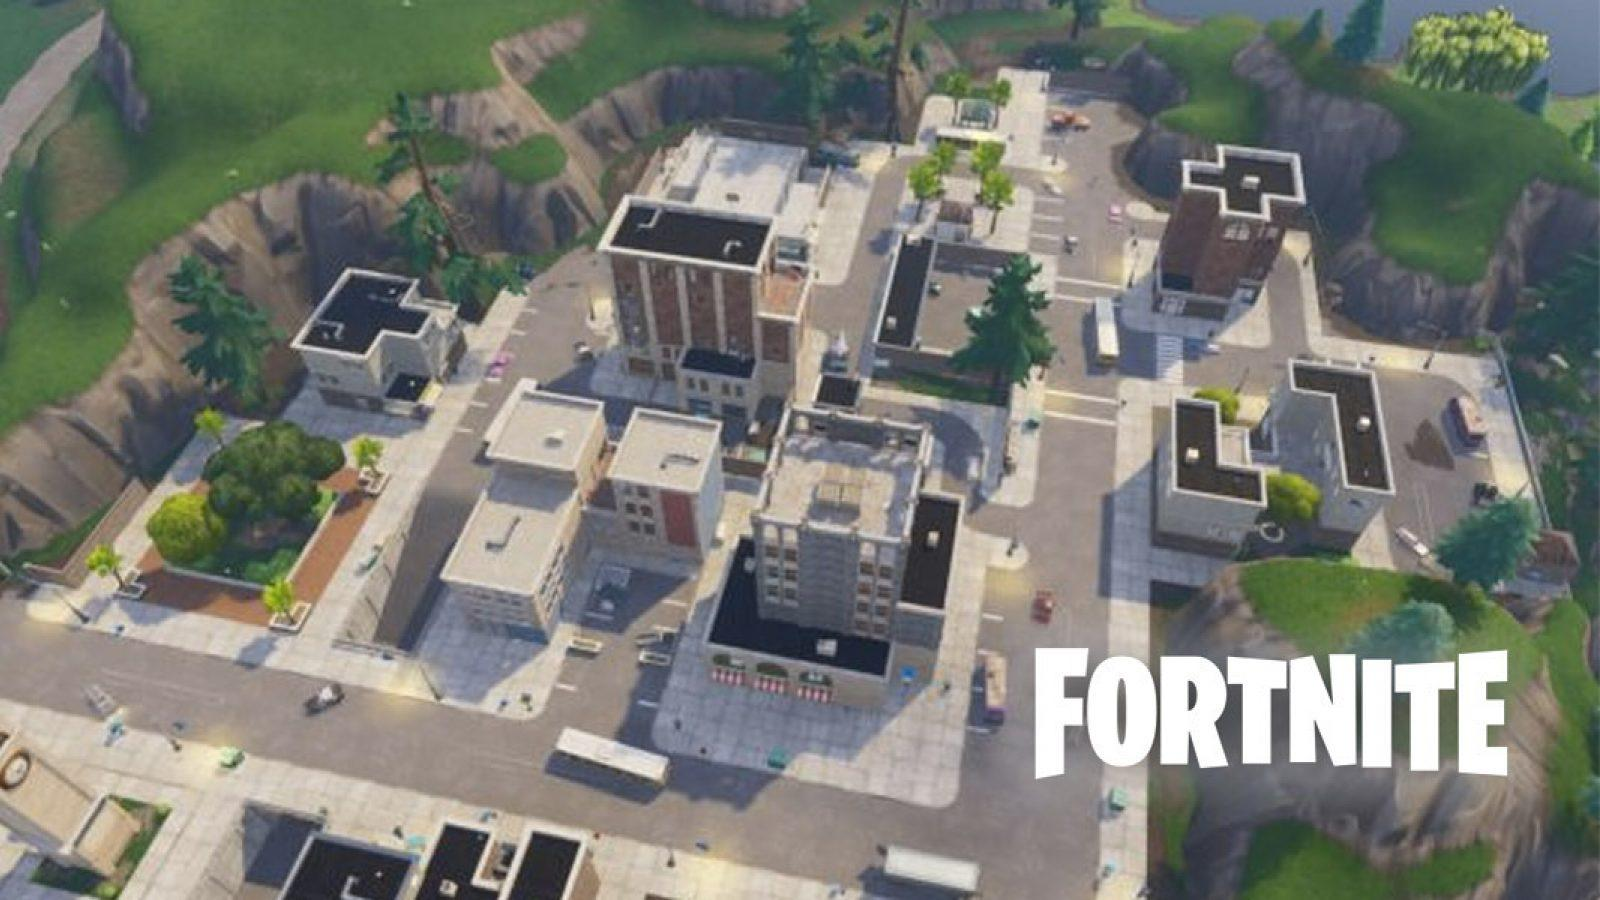 A new building may be arriving to Fortnite's Tilted Towers | Dexerto.com